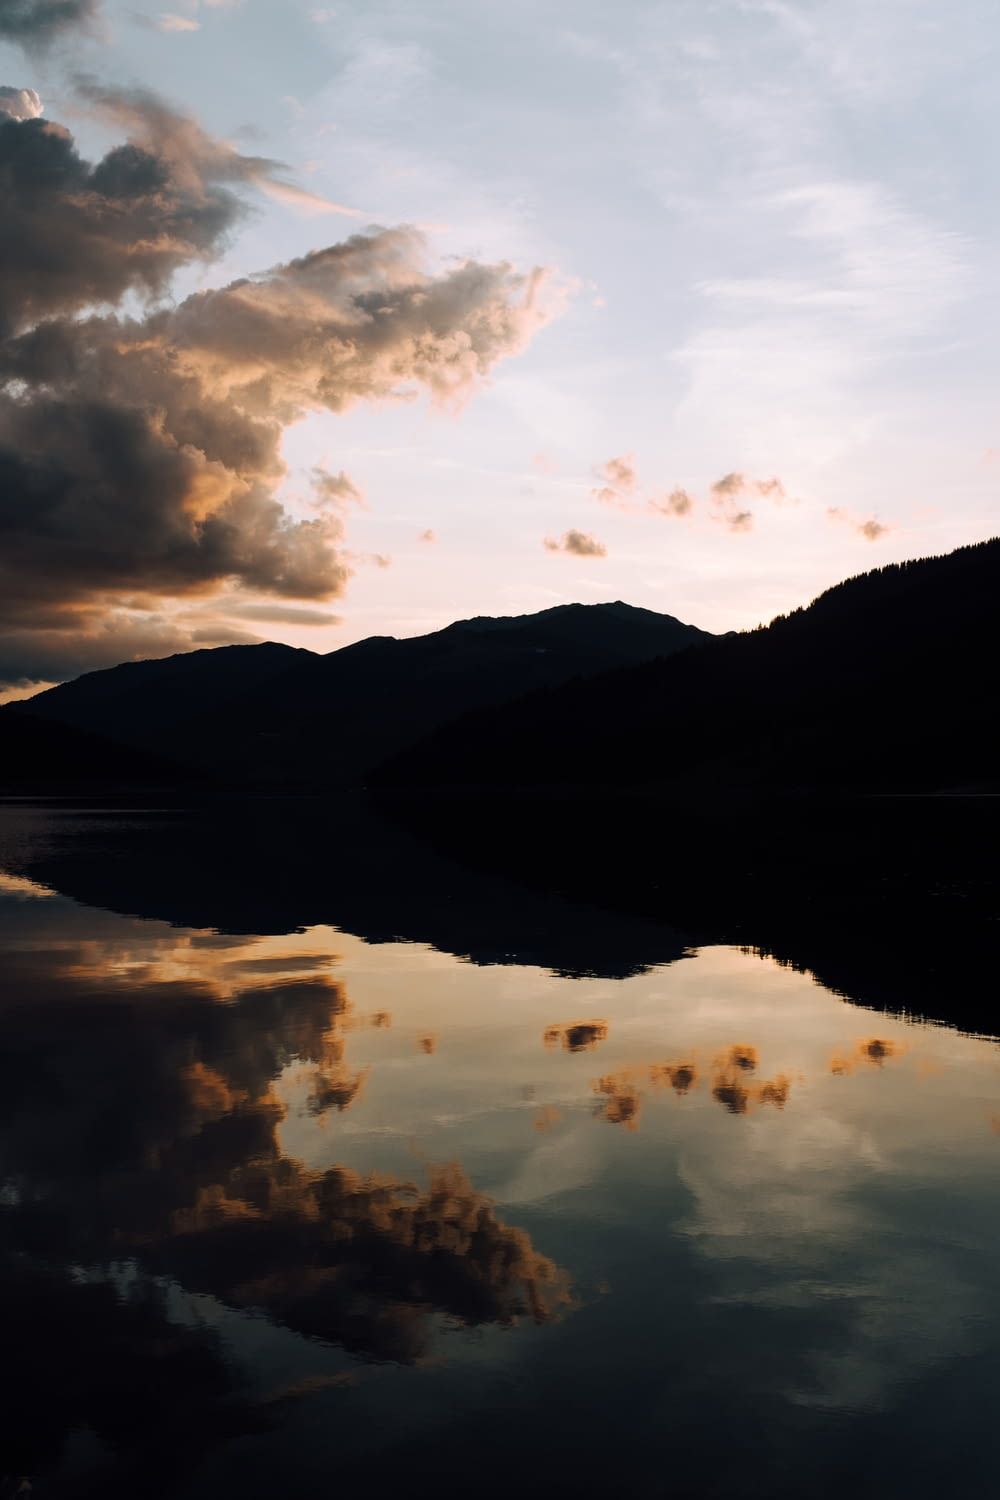 silhouette photography of mountain and body of water